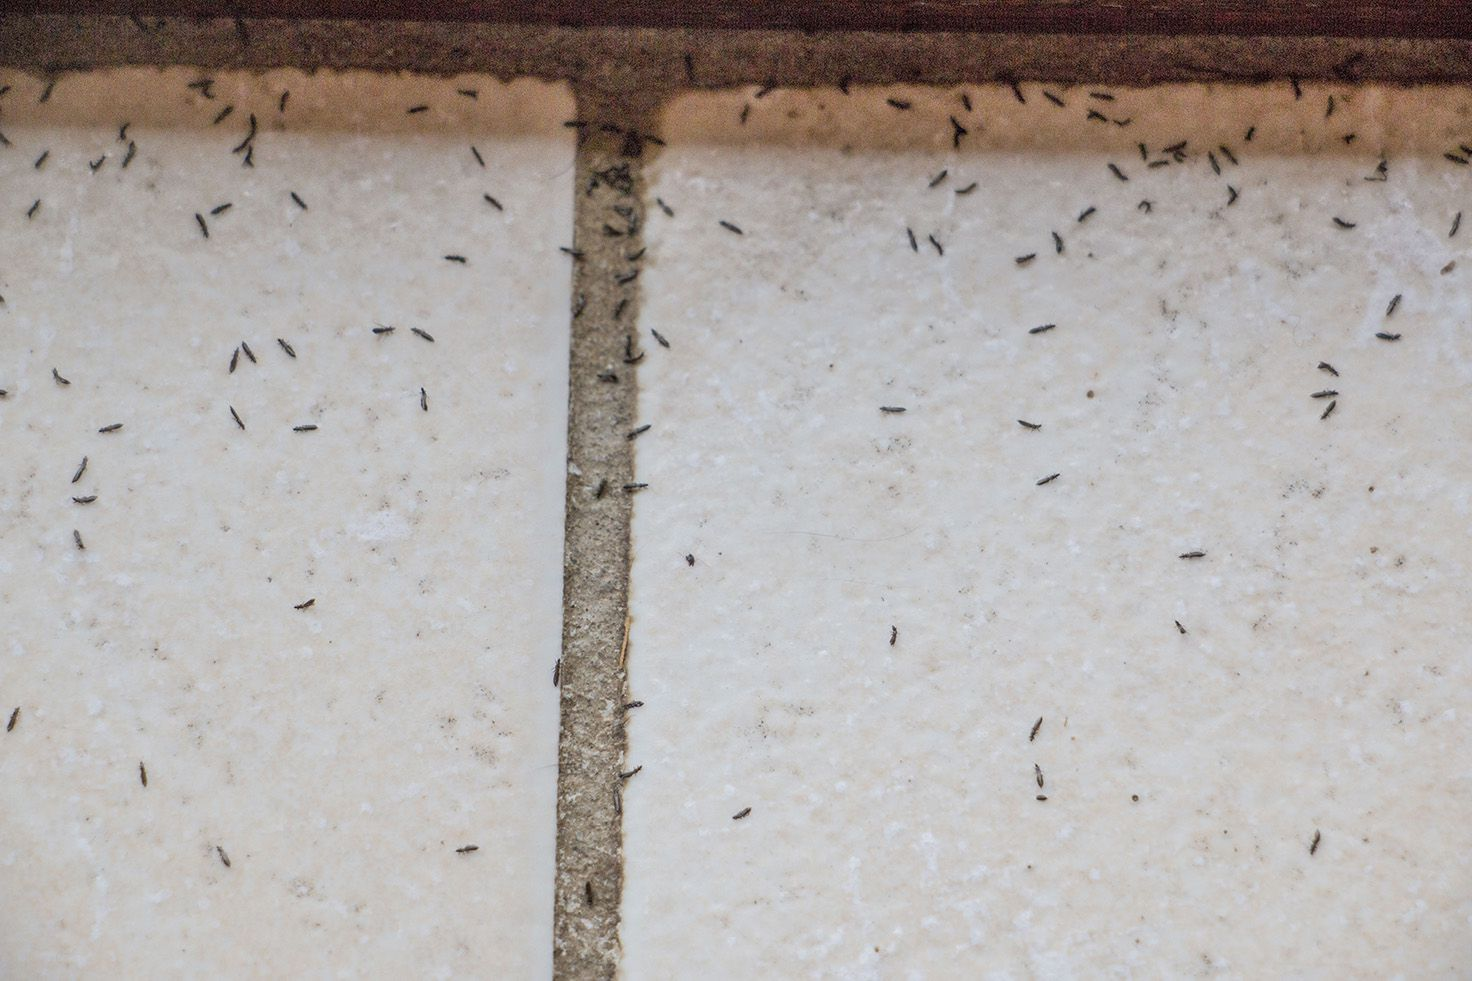 Les thrips ou bêtes d'orage: insupportables bestioles.